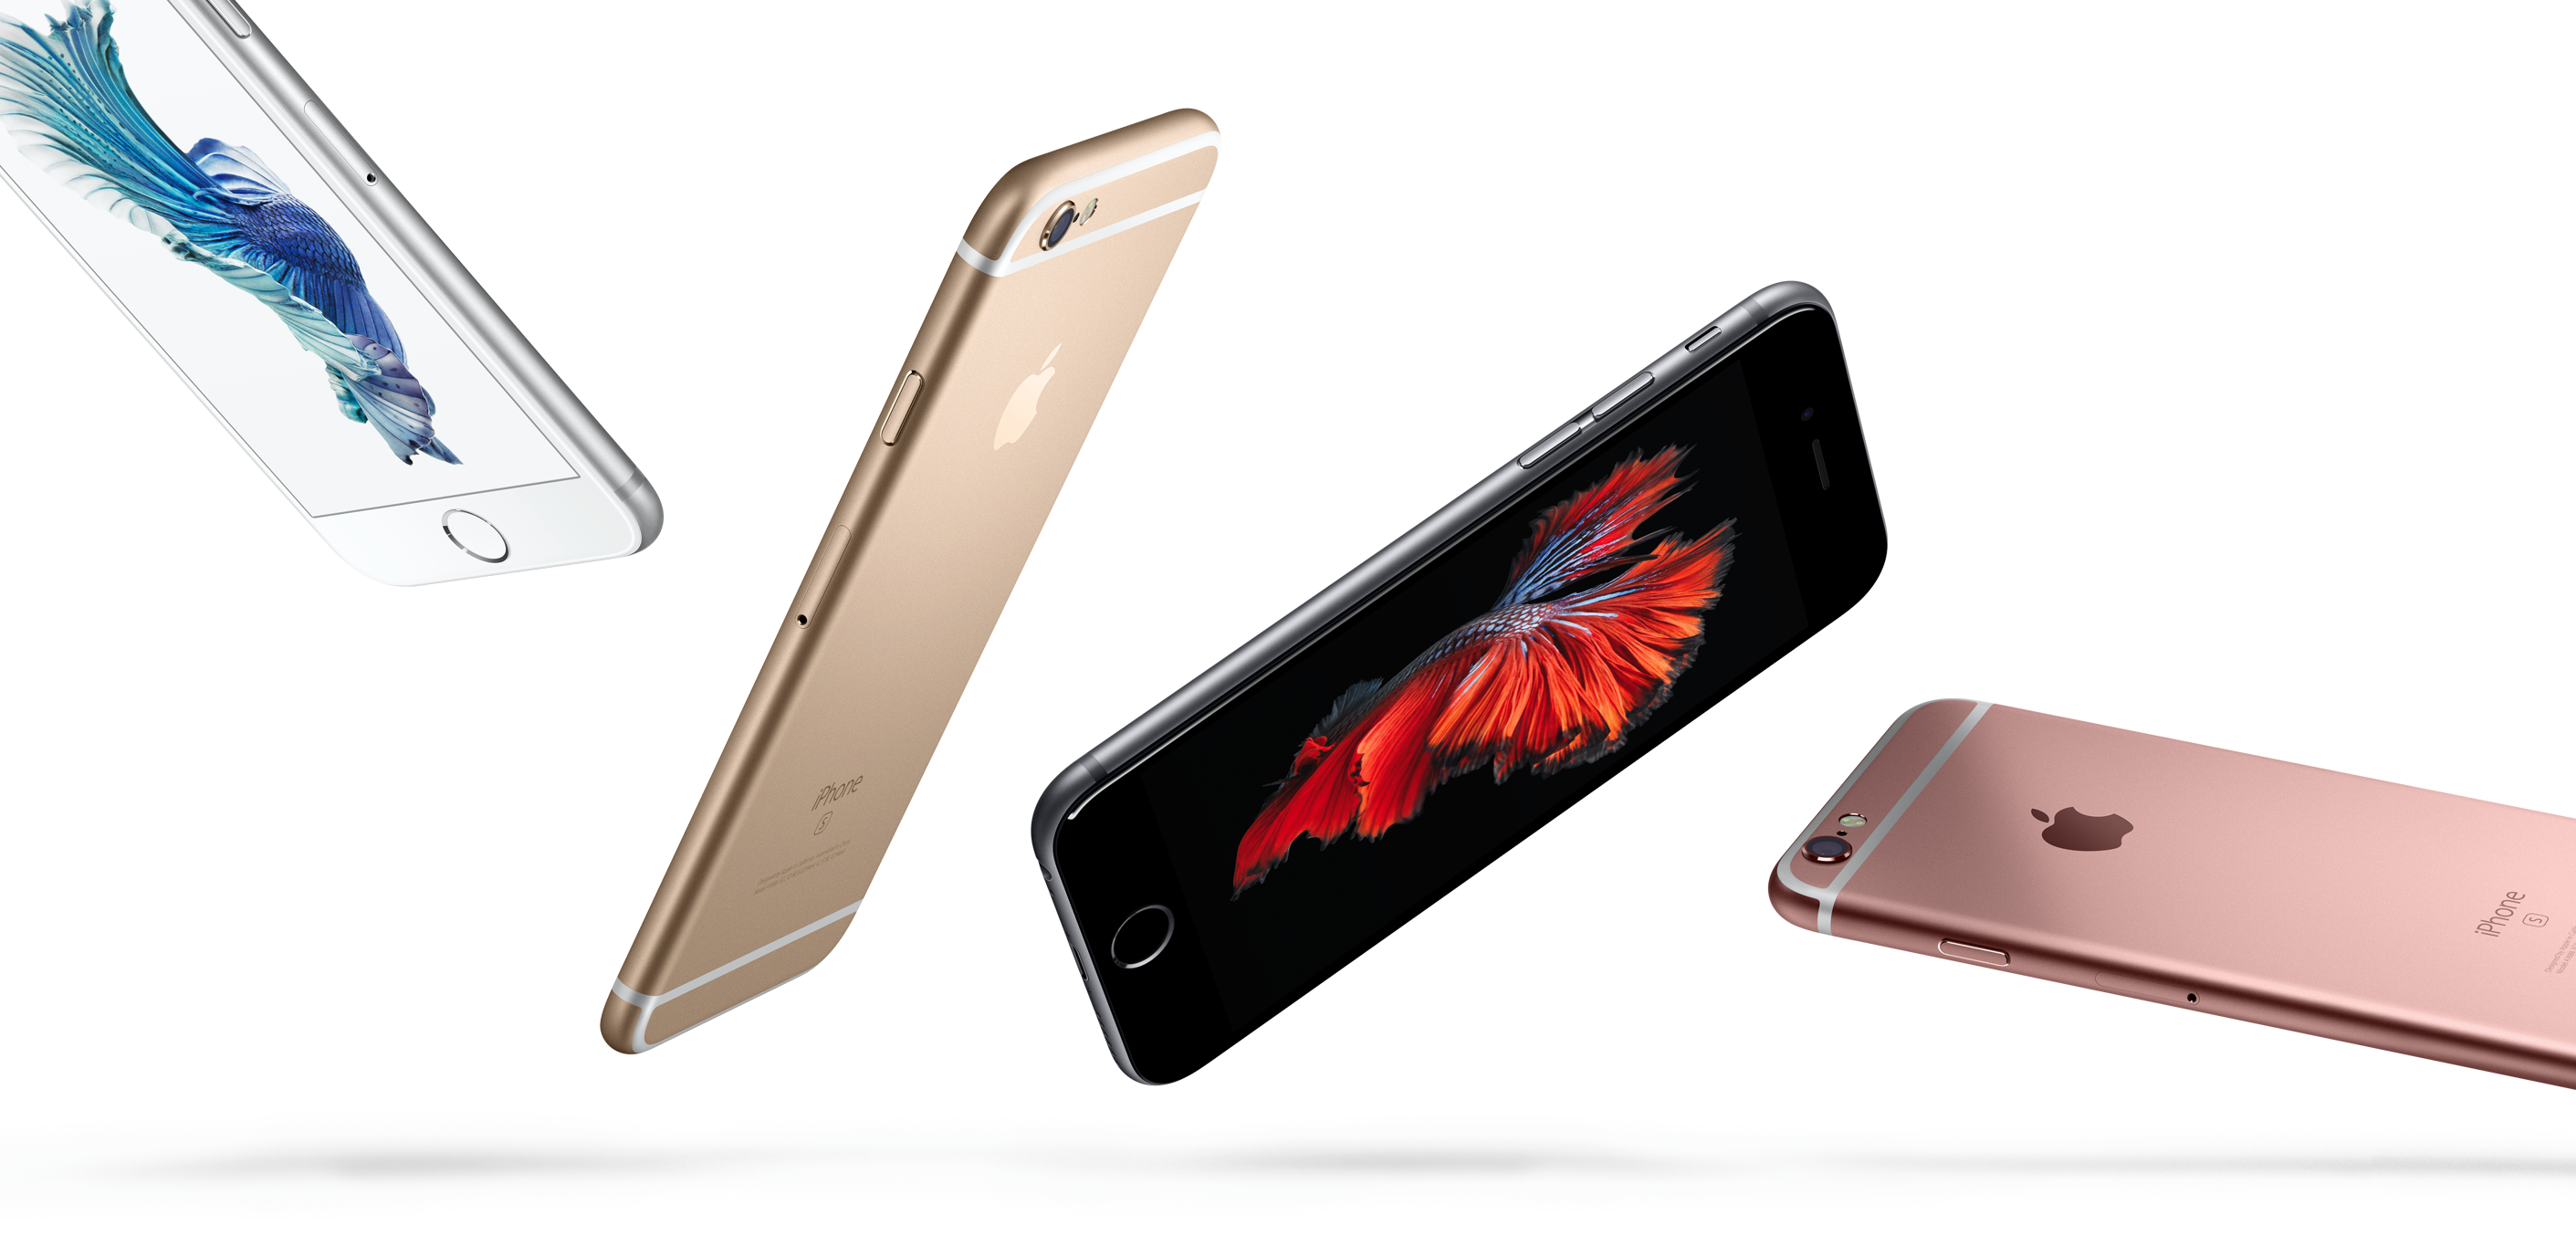 Iphone 6s Might Sport Animated Wallpapers Like Apple Watch: IPhone 6s Plus Animated Wallpaper